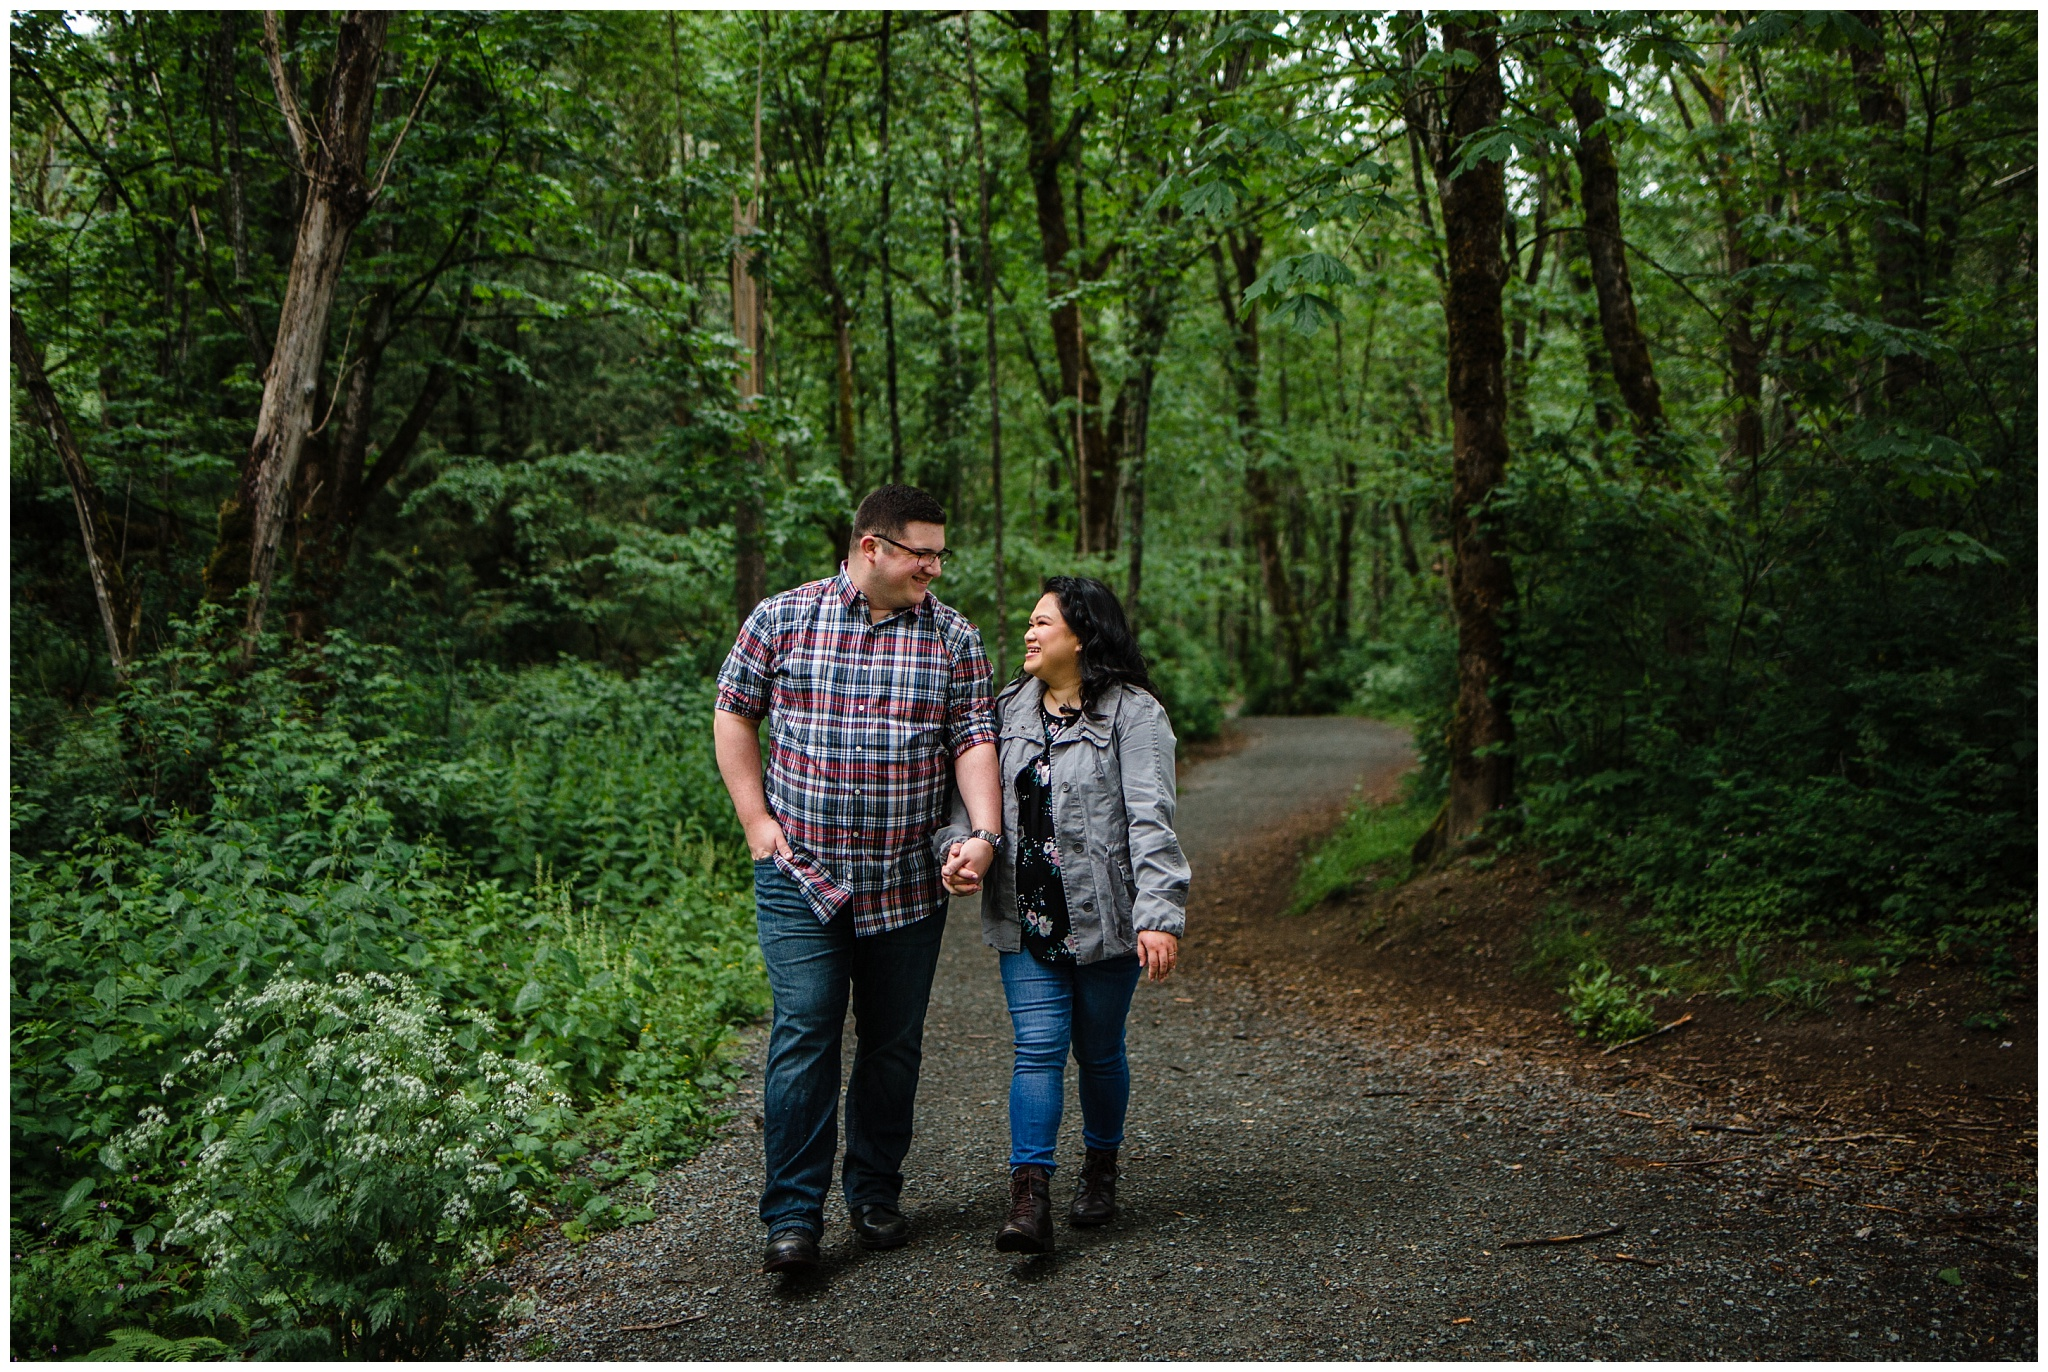 McKay Creek Park Abbotsford Spring Engagement Photos Happy Forest Trees Green Candid Fun Couple Photos_0014.jpg